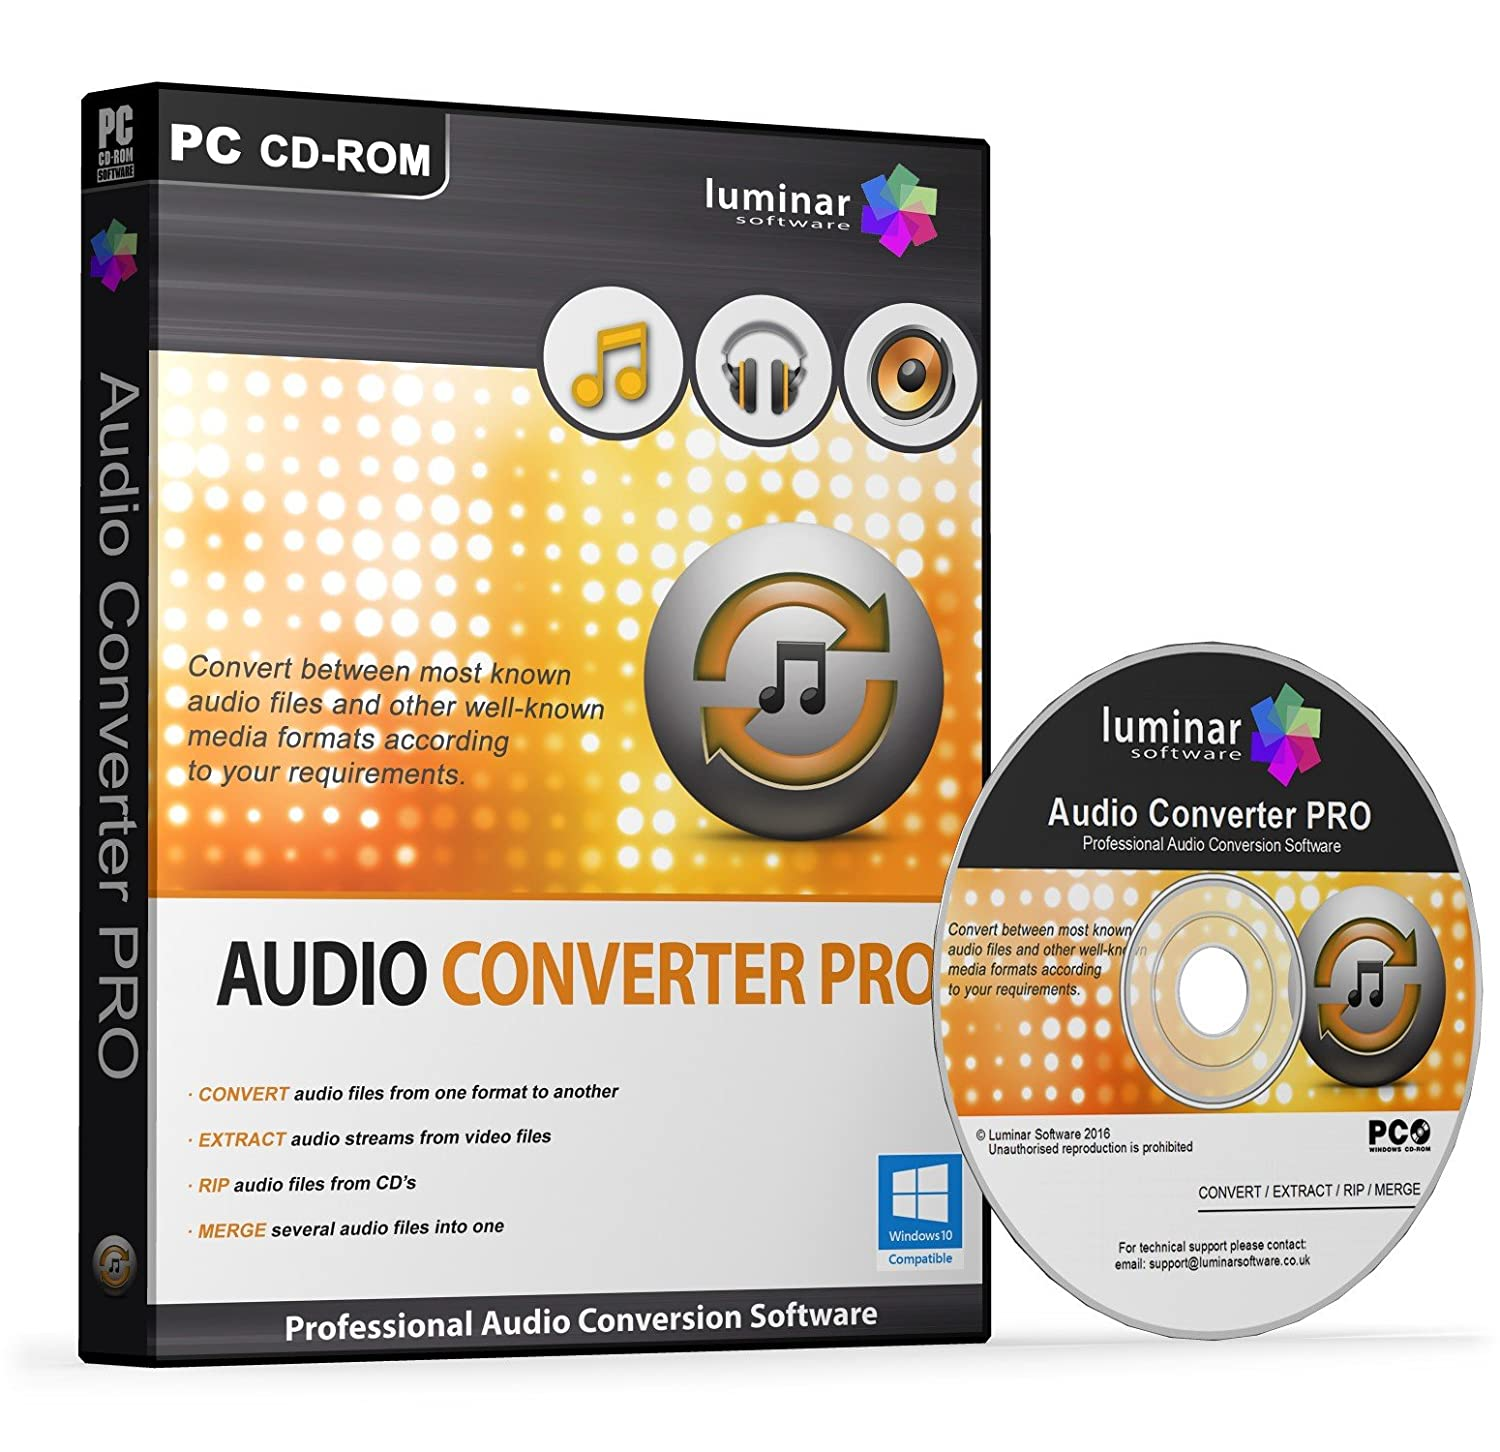 Audio Converter PRO - Professional Audio Conversion Software, Convert MP3,  WAV, WMA, AAC, AC3, OGG, DTS, FLAC, M4A and More (PC) - BOXED AS SHOWN